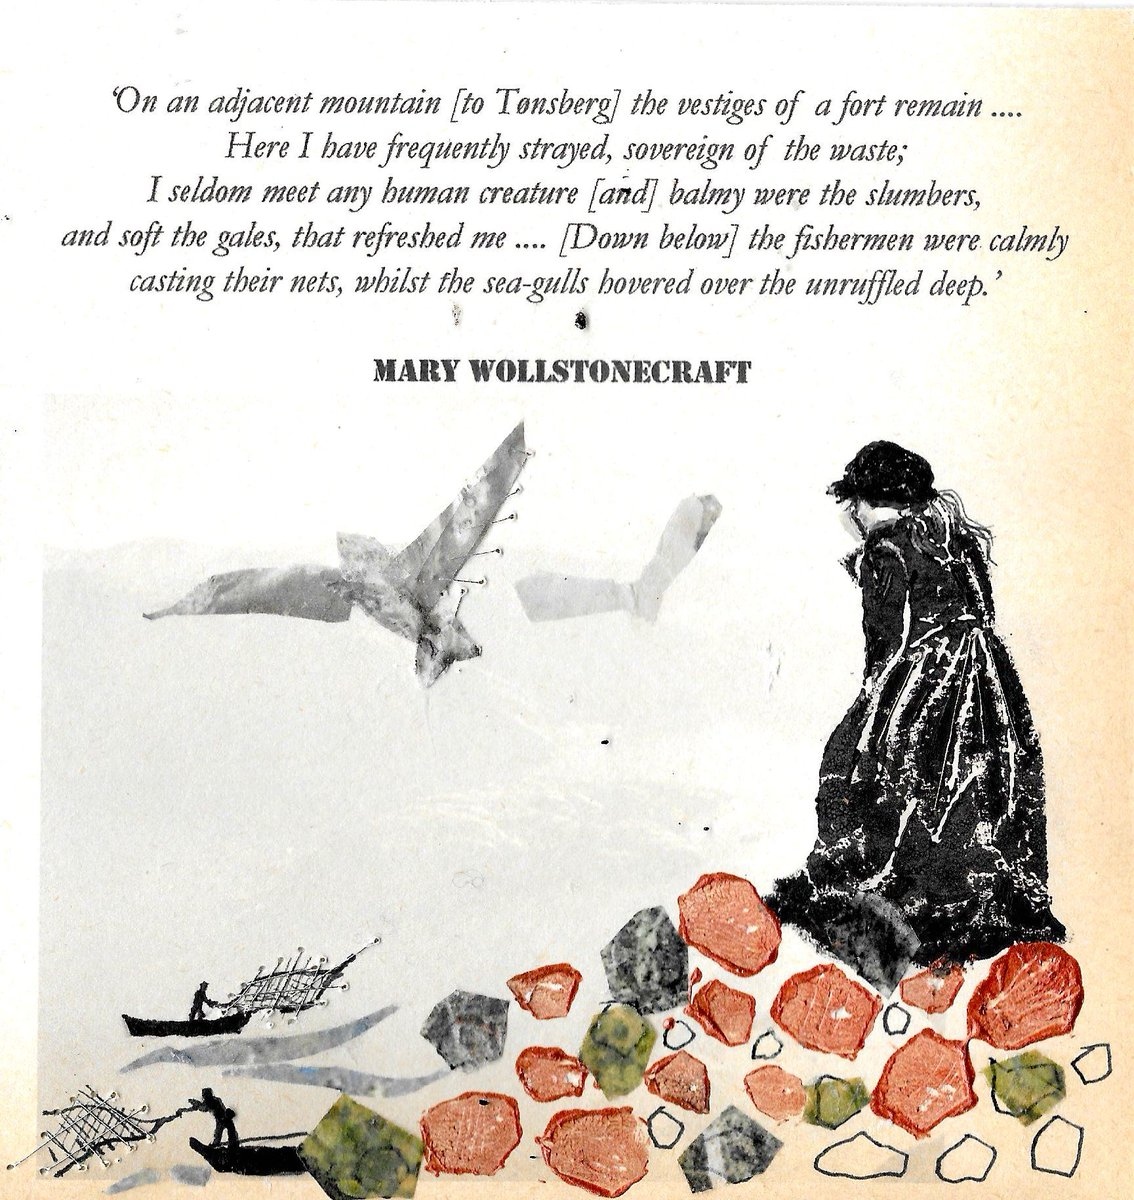 To commemorate #MaryWollstonecraft&#39;s birthday on 27 April, I am showing art inspired by her #Letters from #Norway at @Bookmarks_books the socialist bookshop, Bloomsbury Street, London, 16–30 April - come see art &amp; liberate your minds in the largest socialist bookshop in Britain.<br>http://pic.twitter.com/3At5HJq4H1